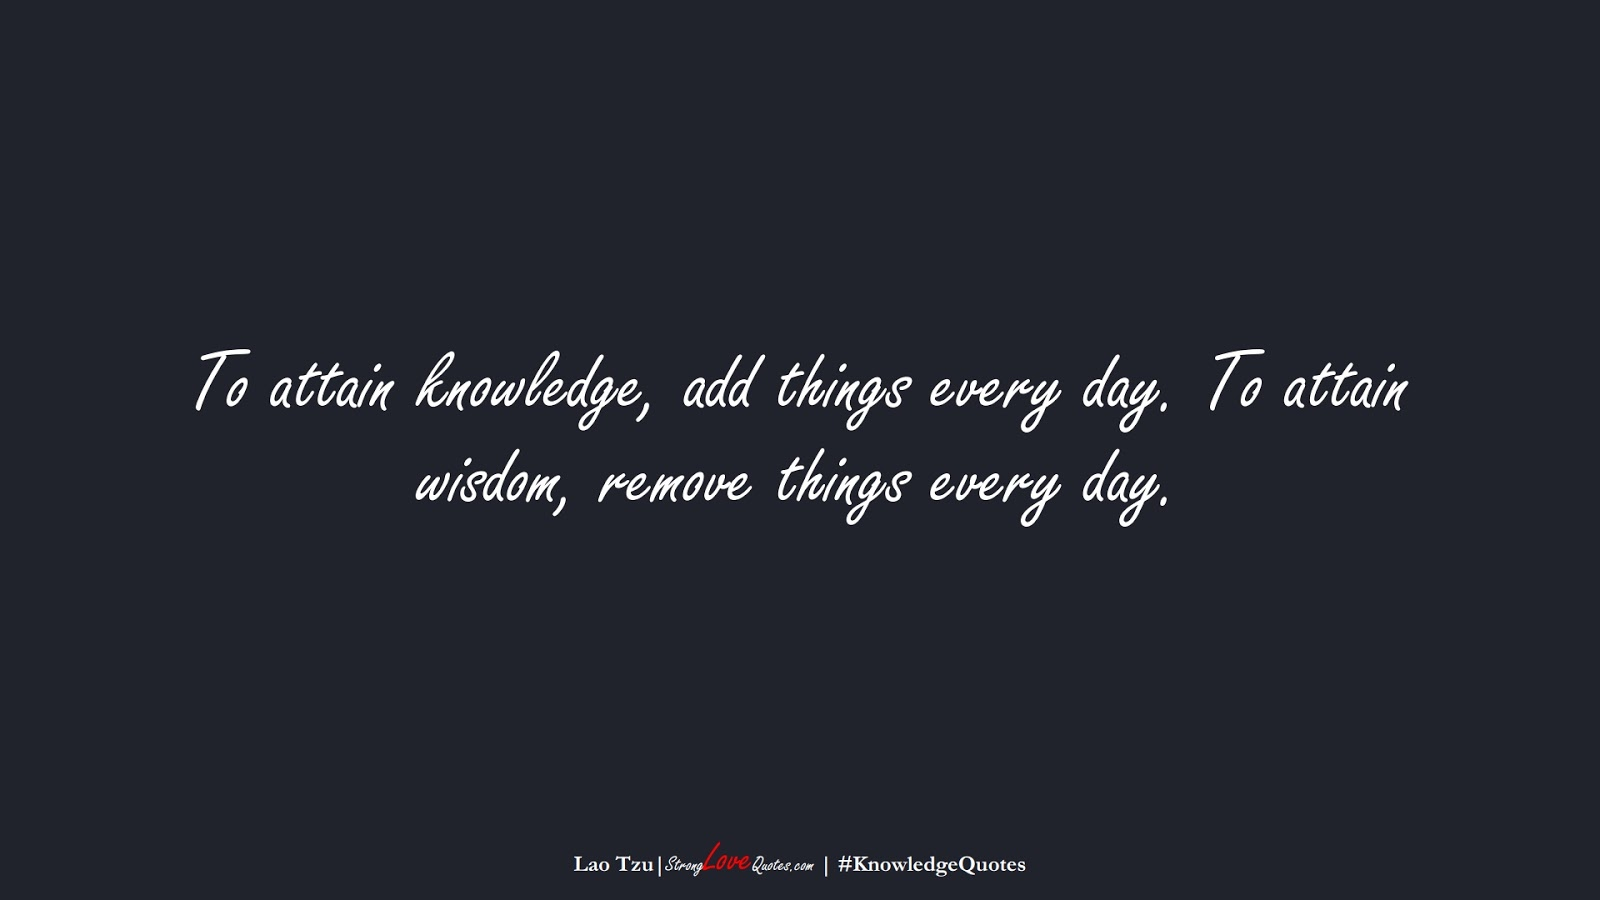 To attain knowledge, add things every day. To attain wisdom, remove things every day. (Lao Tzu);  #KnowledgeQuotes